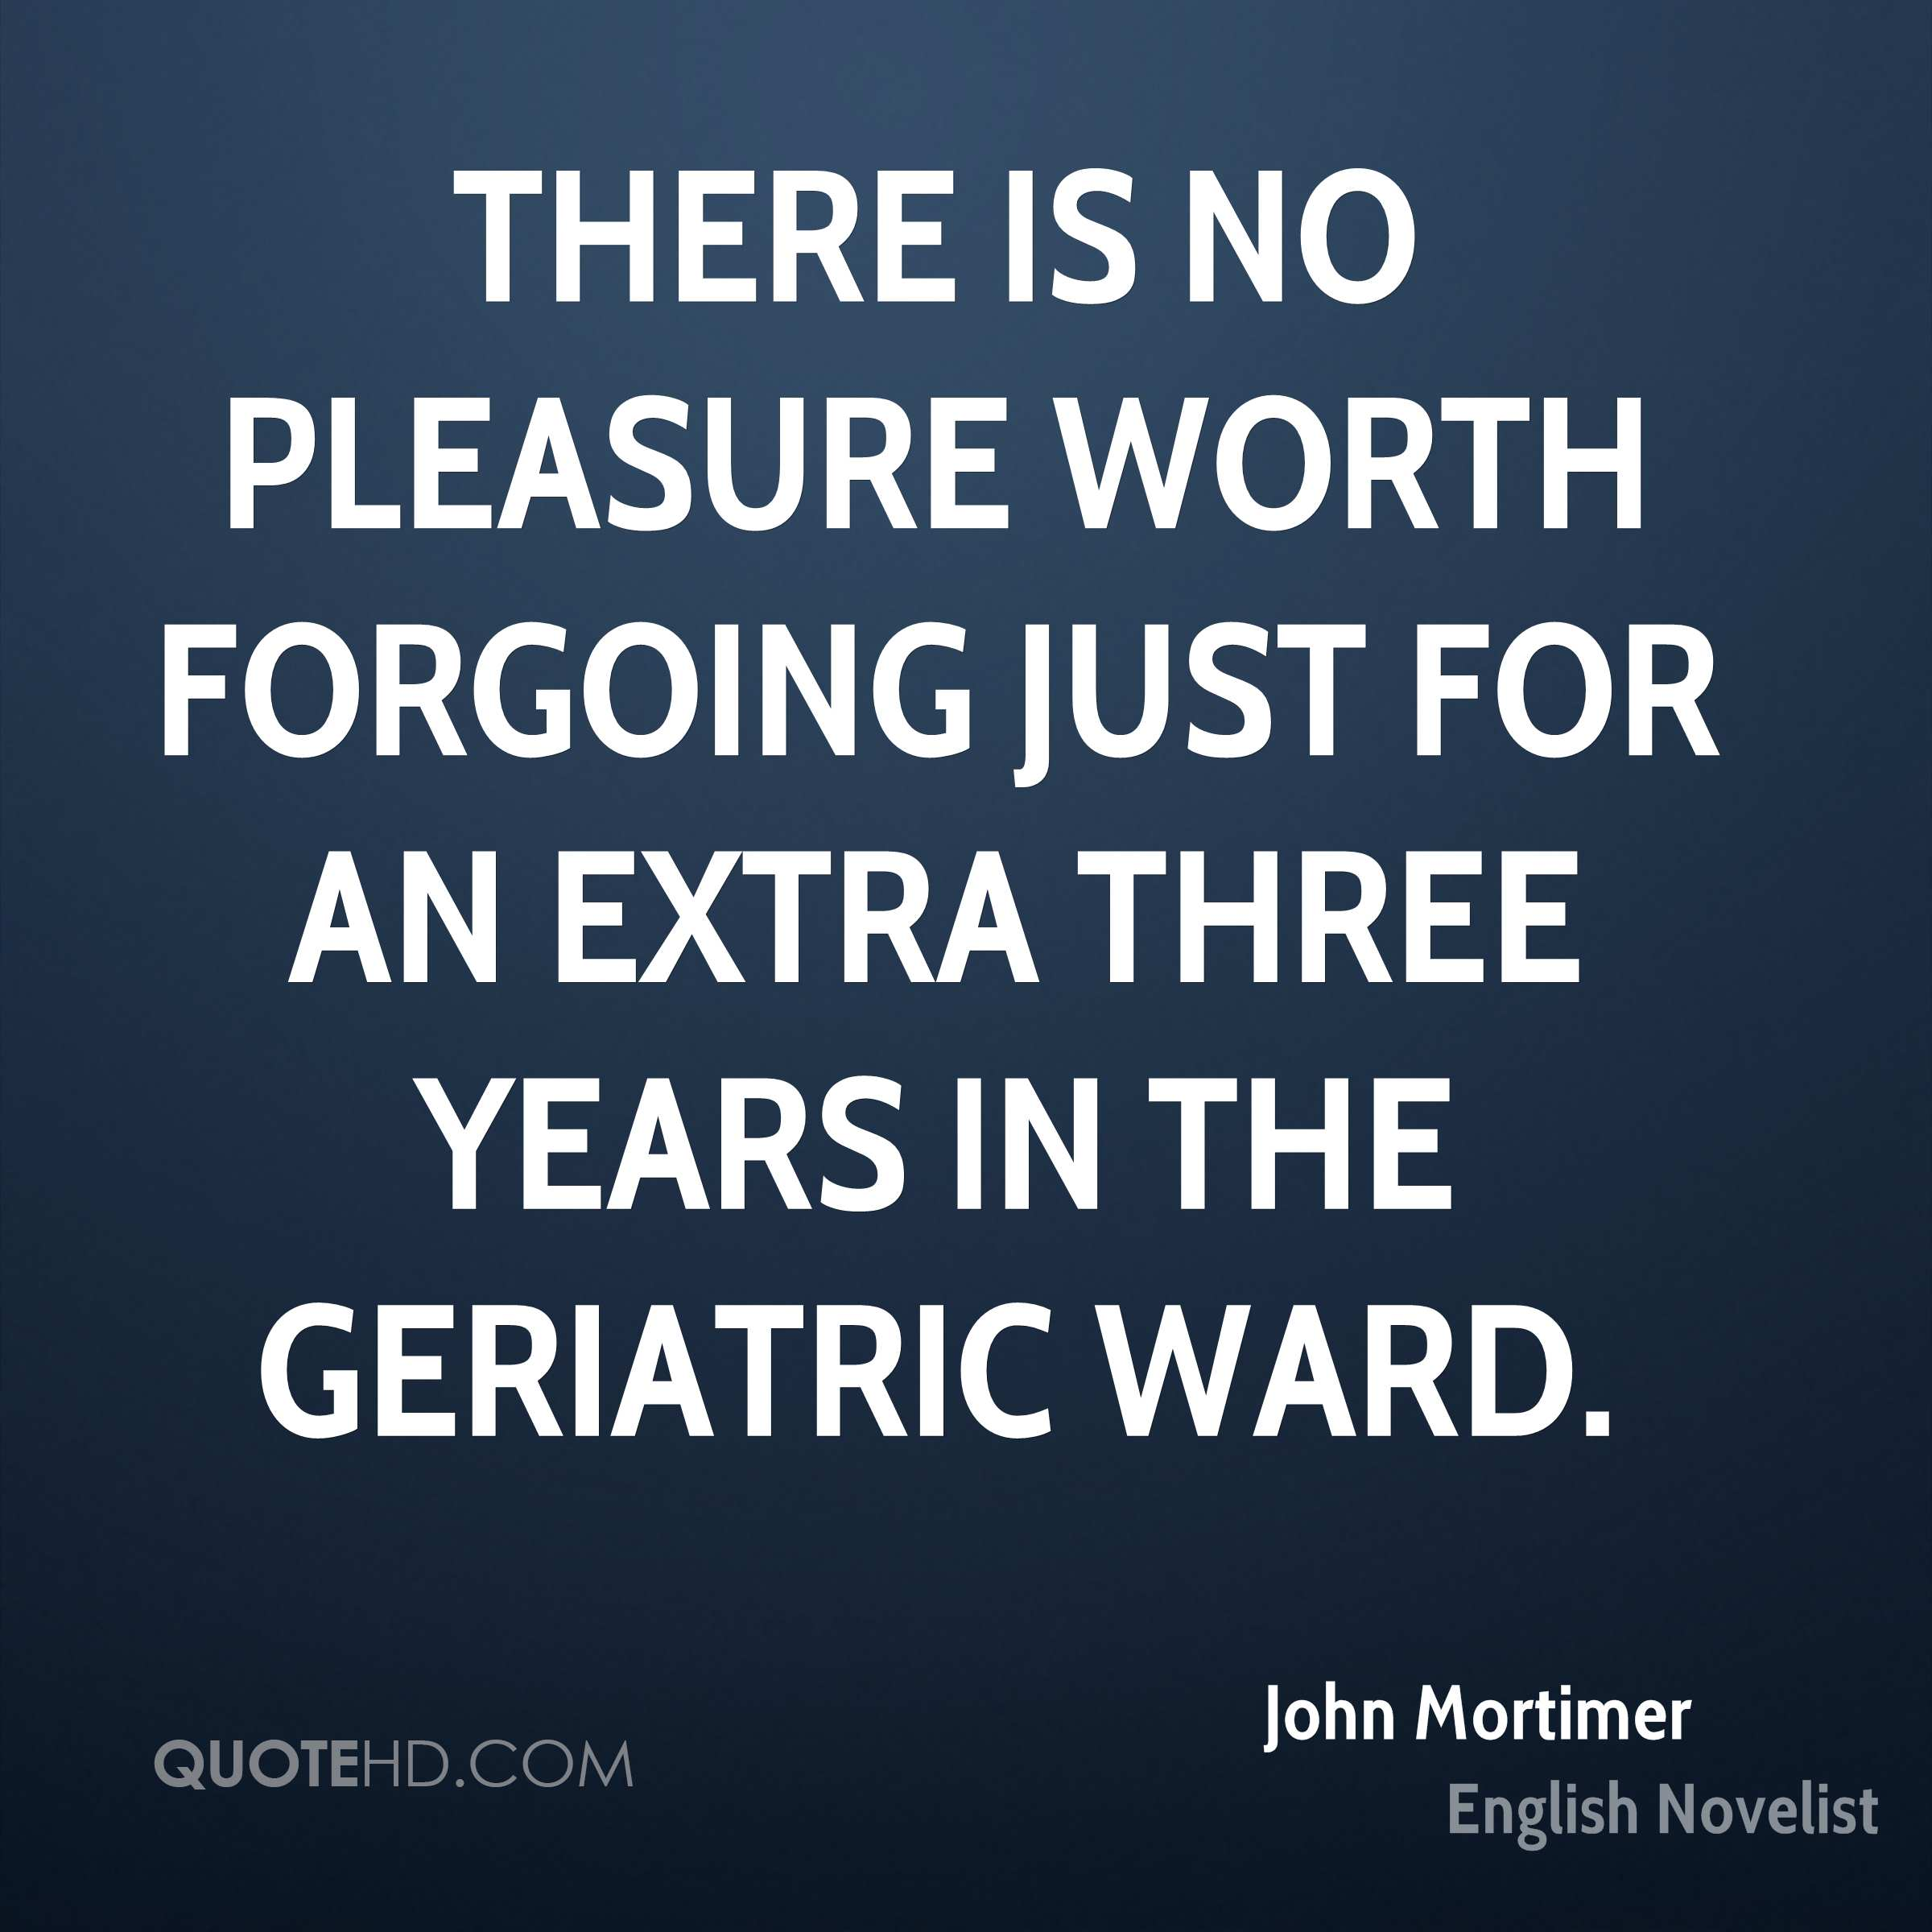 There is no pleasure worth forgoing just for an extra three years in the geriatric ward.